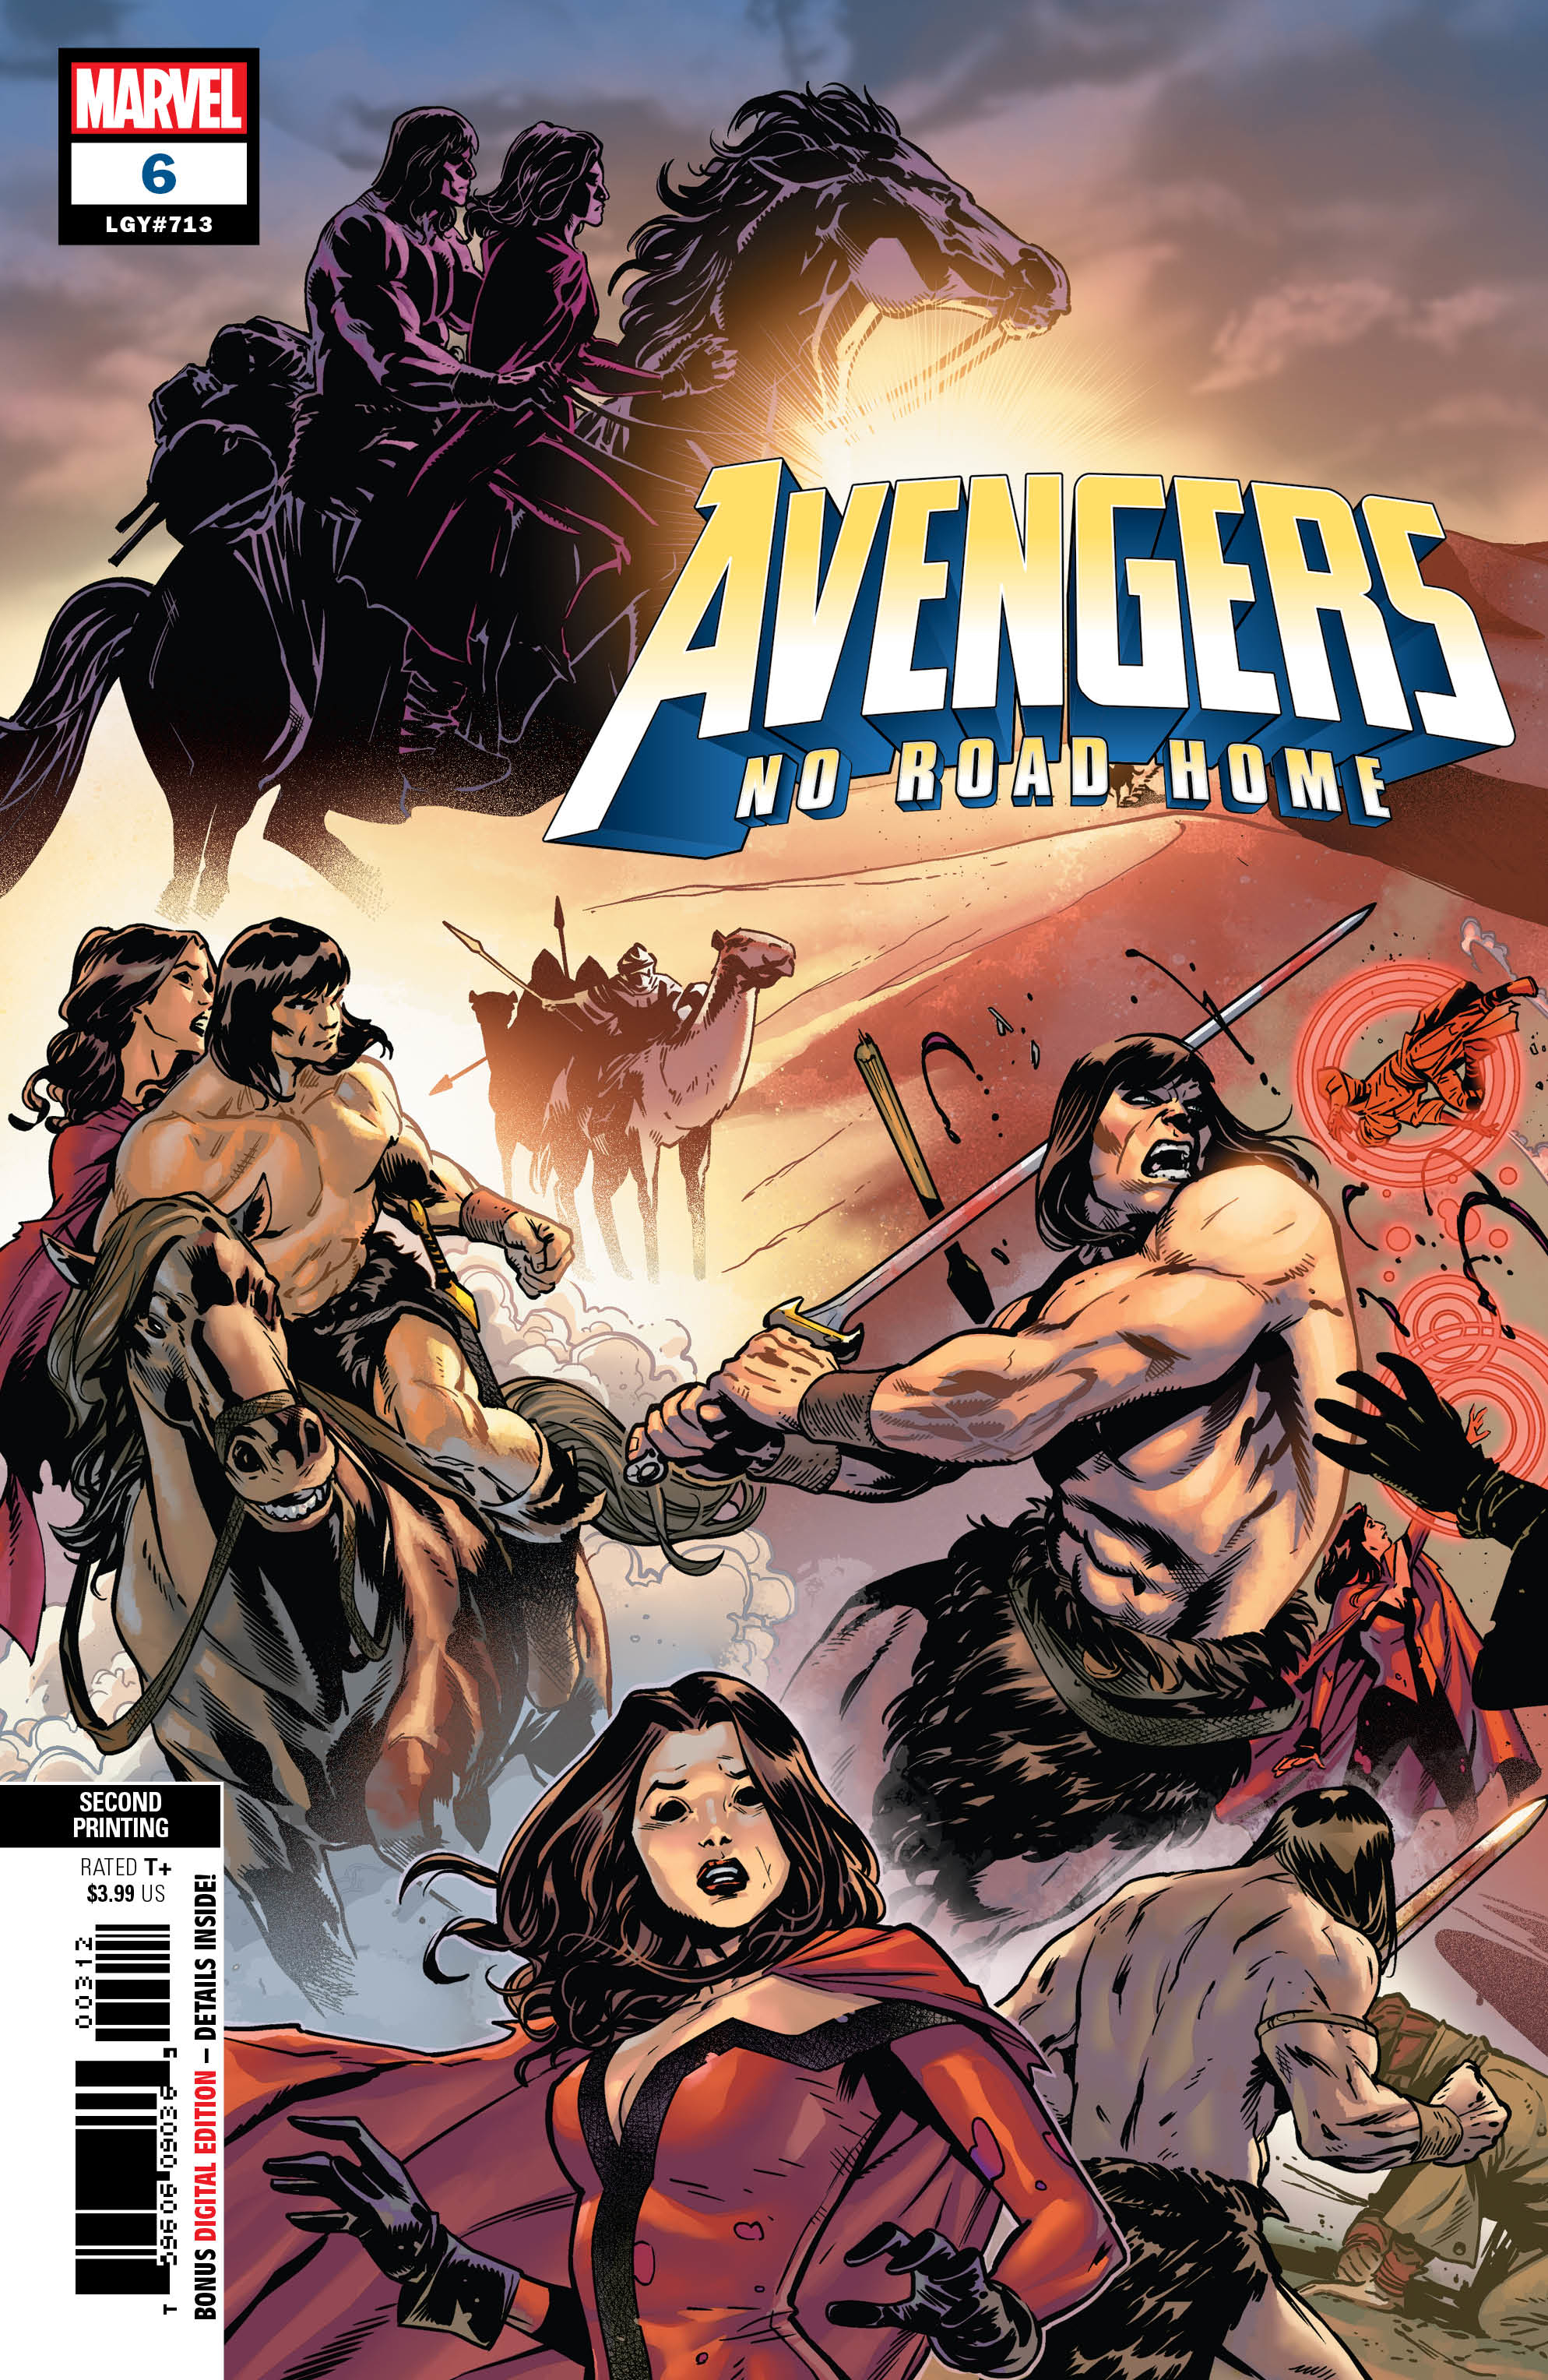 AVENGERS NO ROAD HOME #6 (OF 10) 2ND PTG IZAAKSE VAR